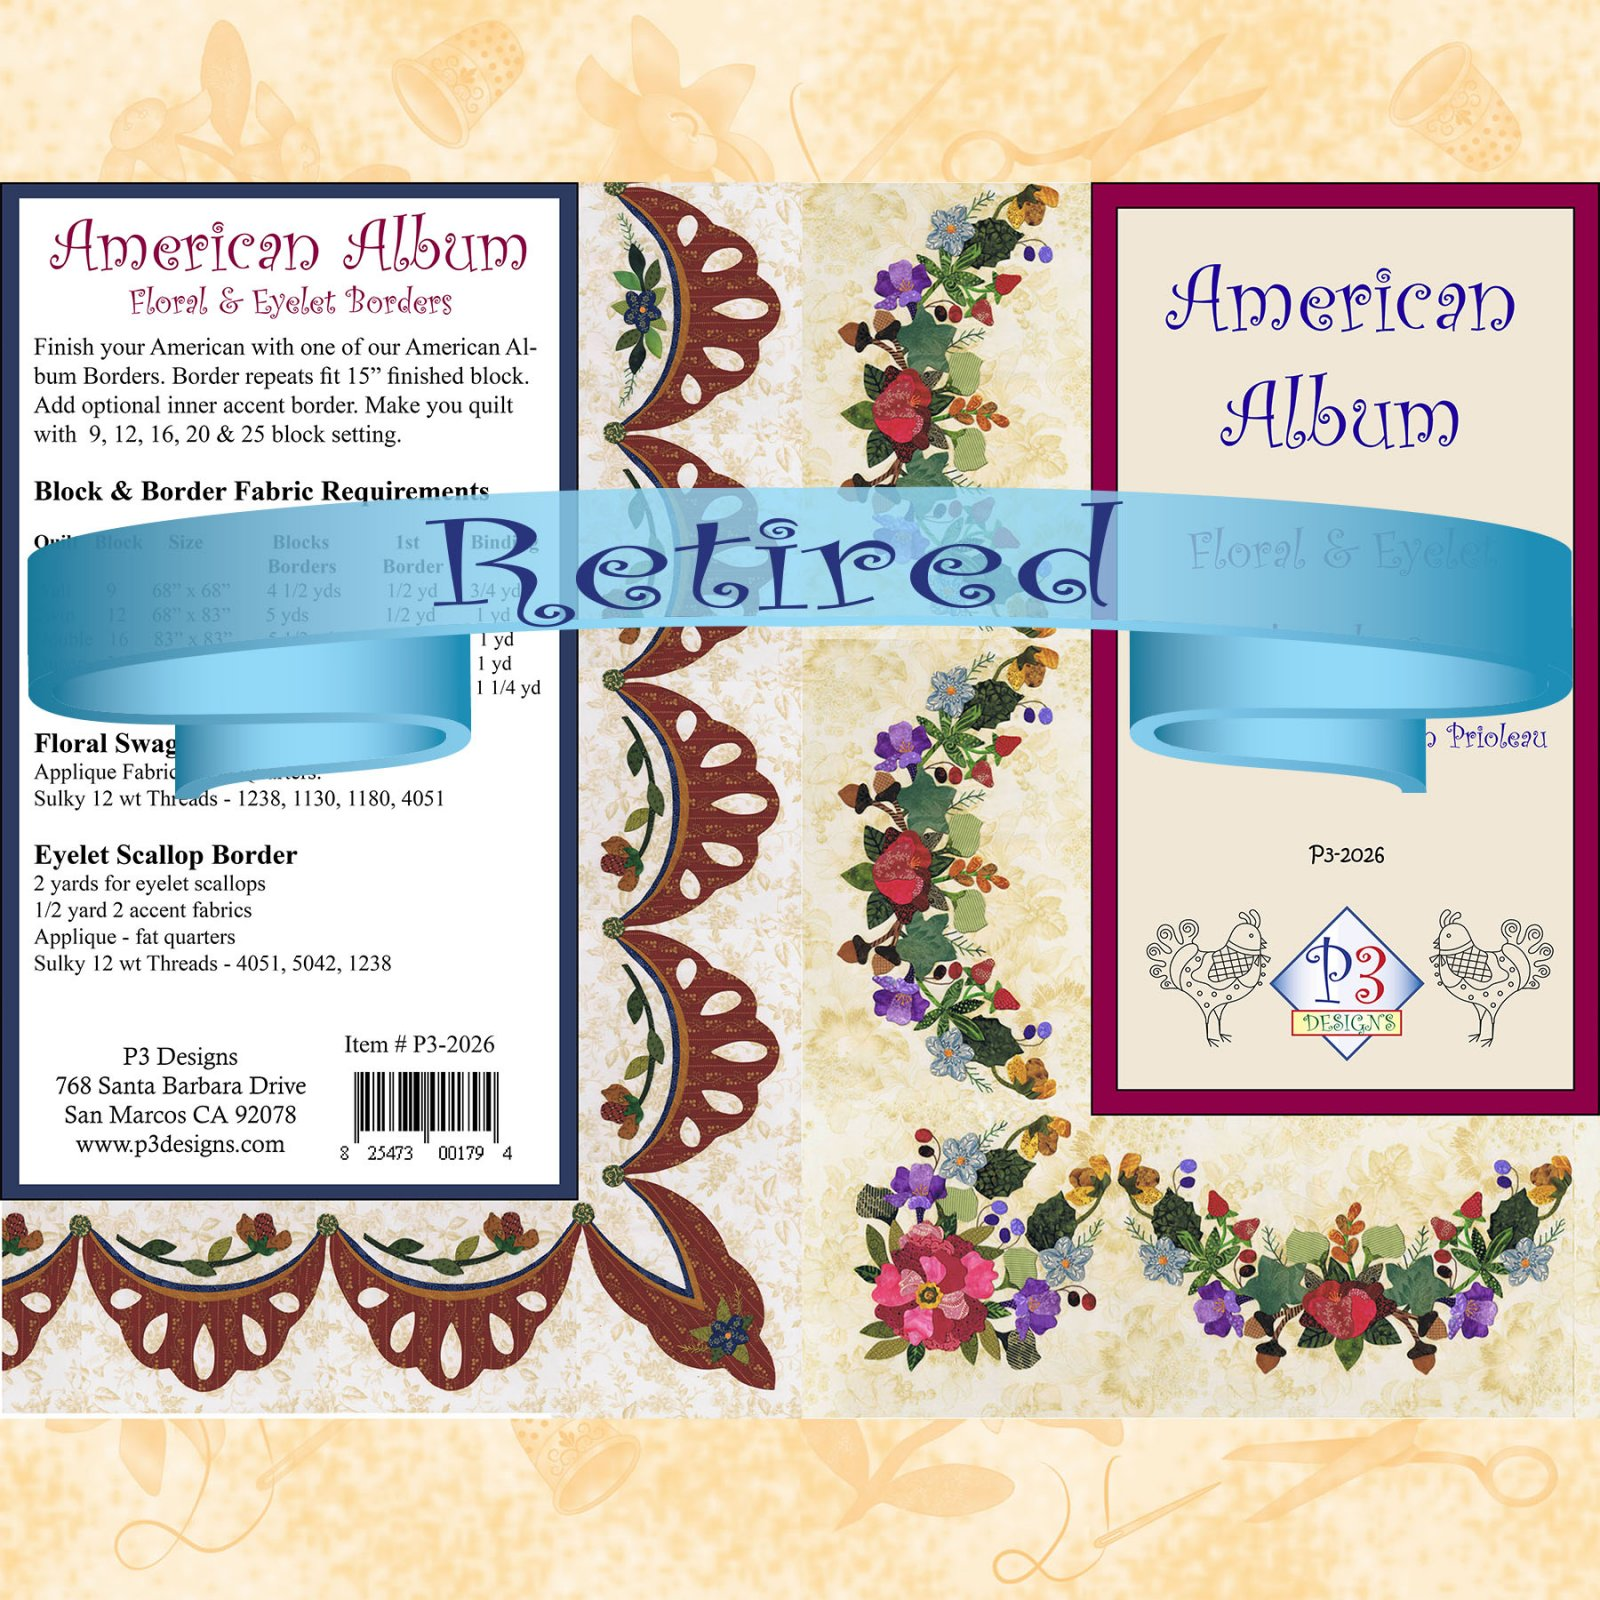 P3-2026 Floral Swag & Eyelet Borders